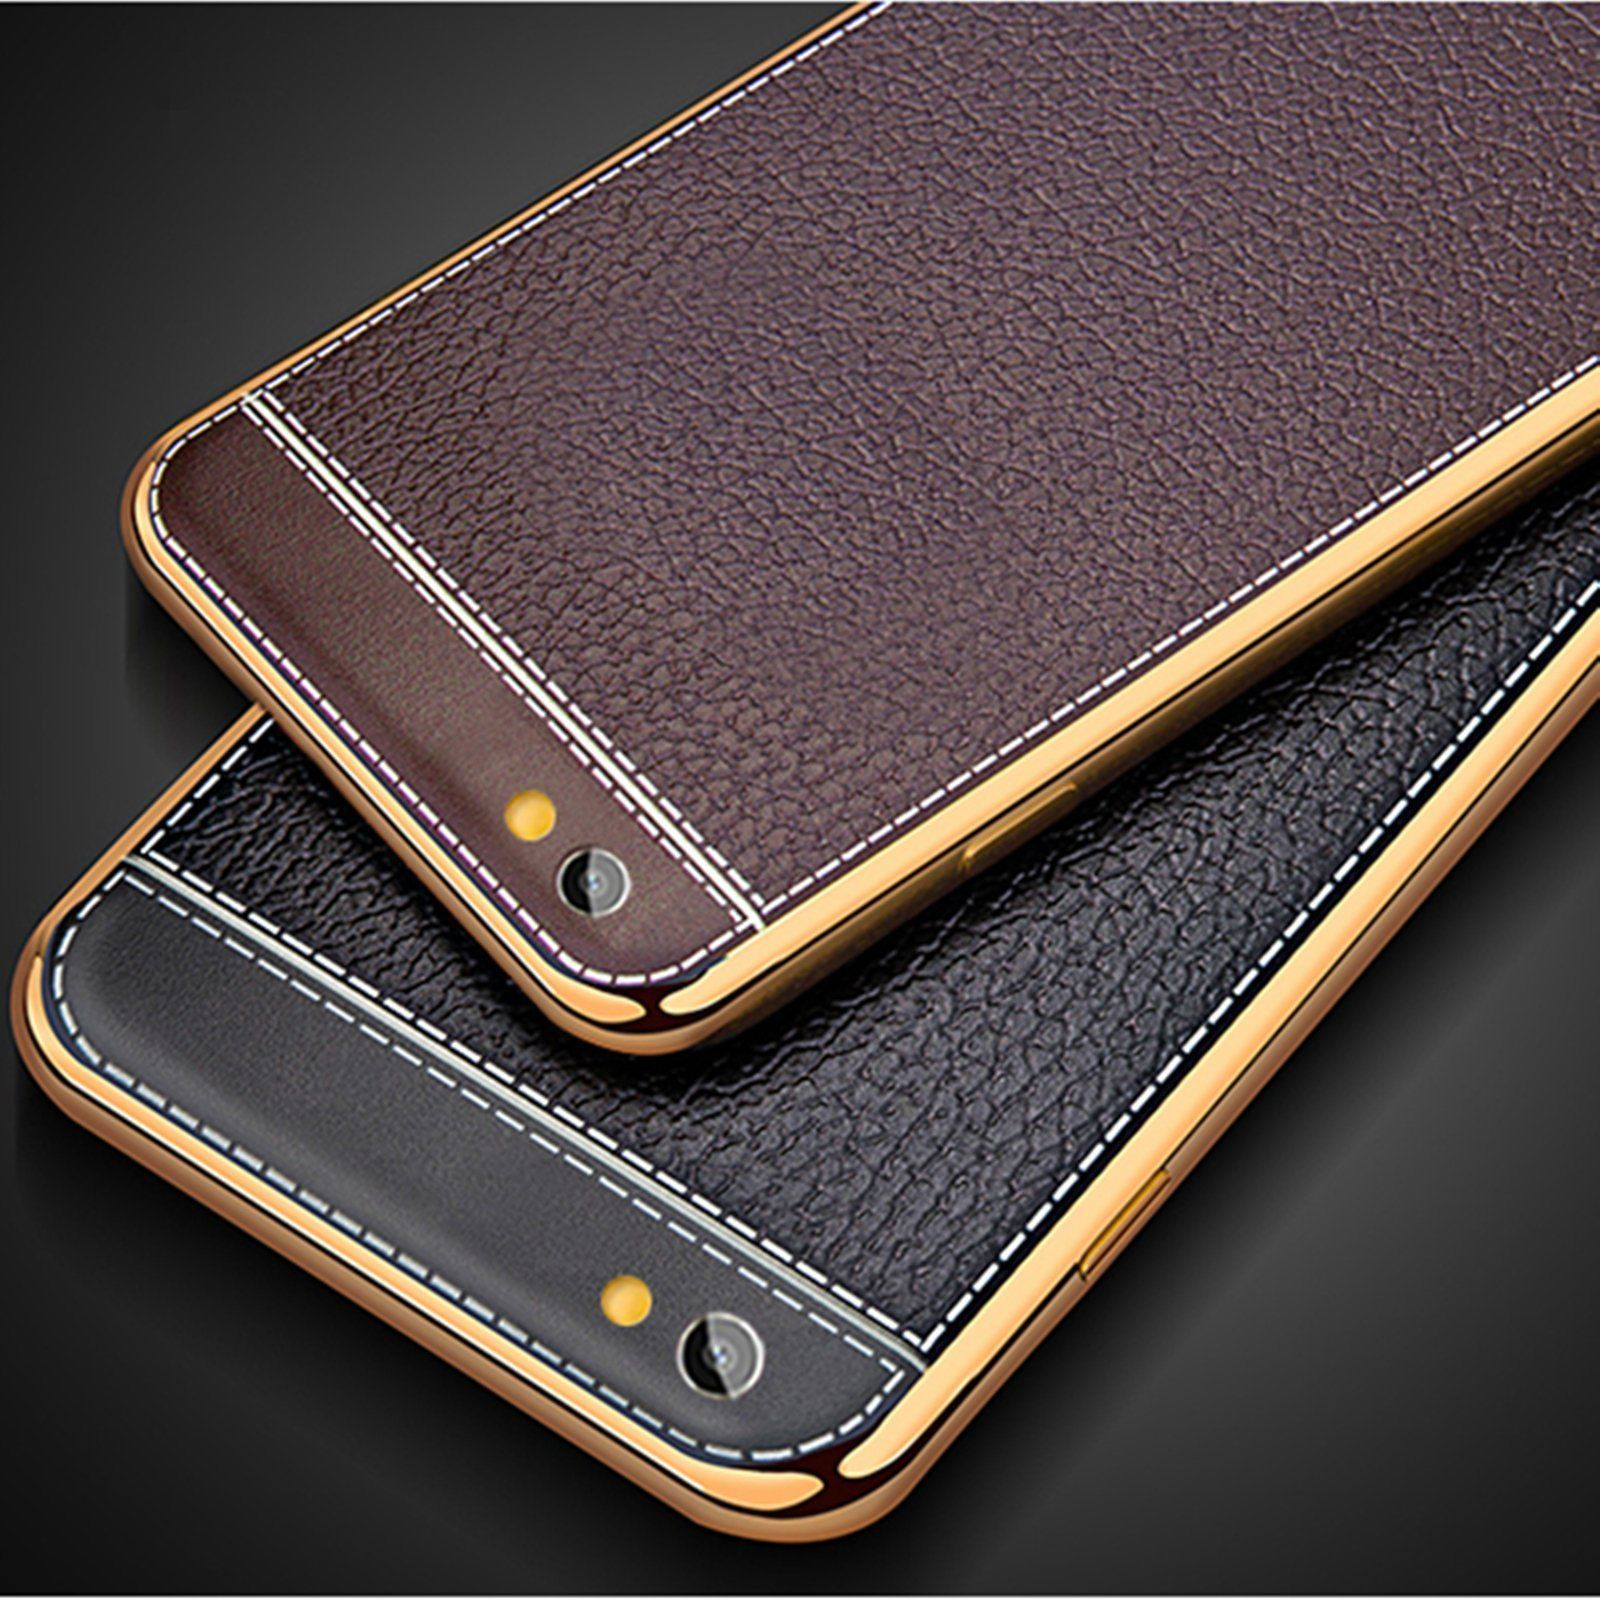 leather style back soft case cover for huawei honor 7x 7i v9 6 6x 5xleather style back soft case cover for huawei mate 9 8 7 pro enjoy 5 6 6s p10 p8